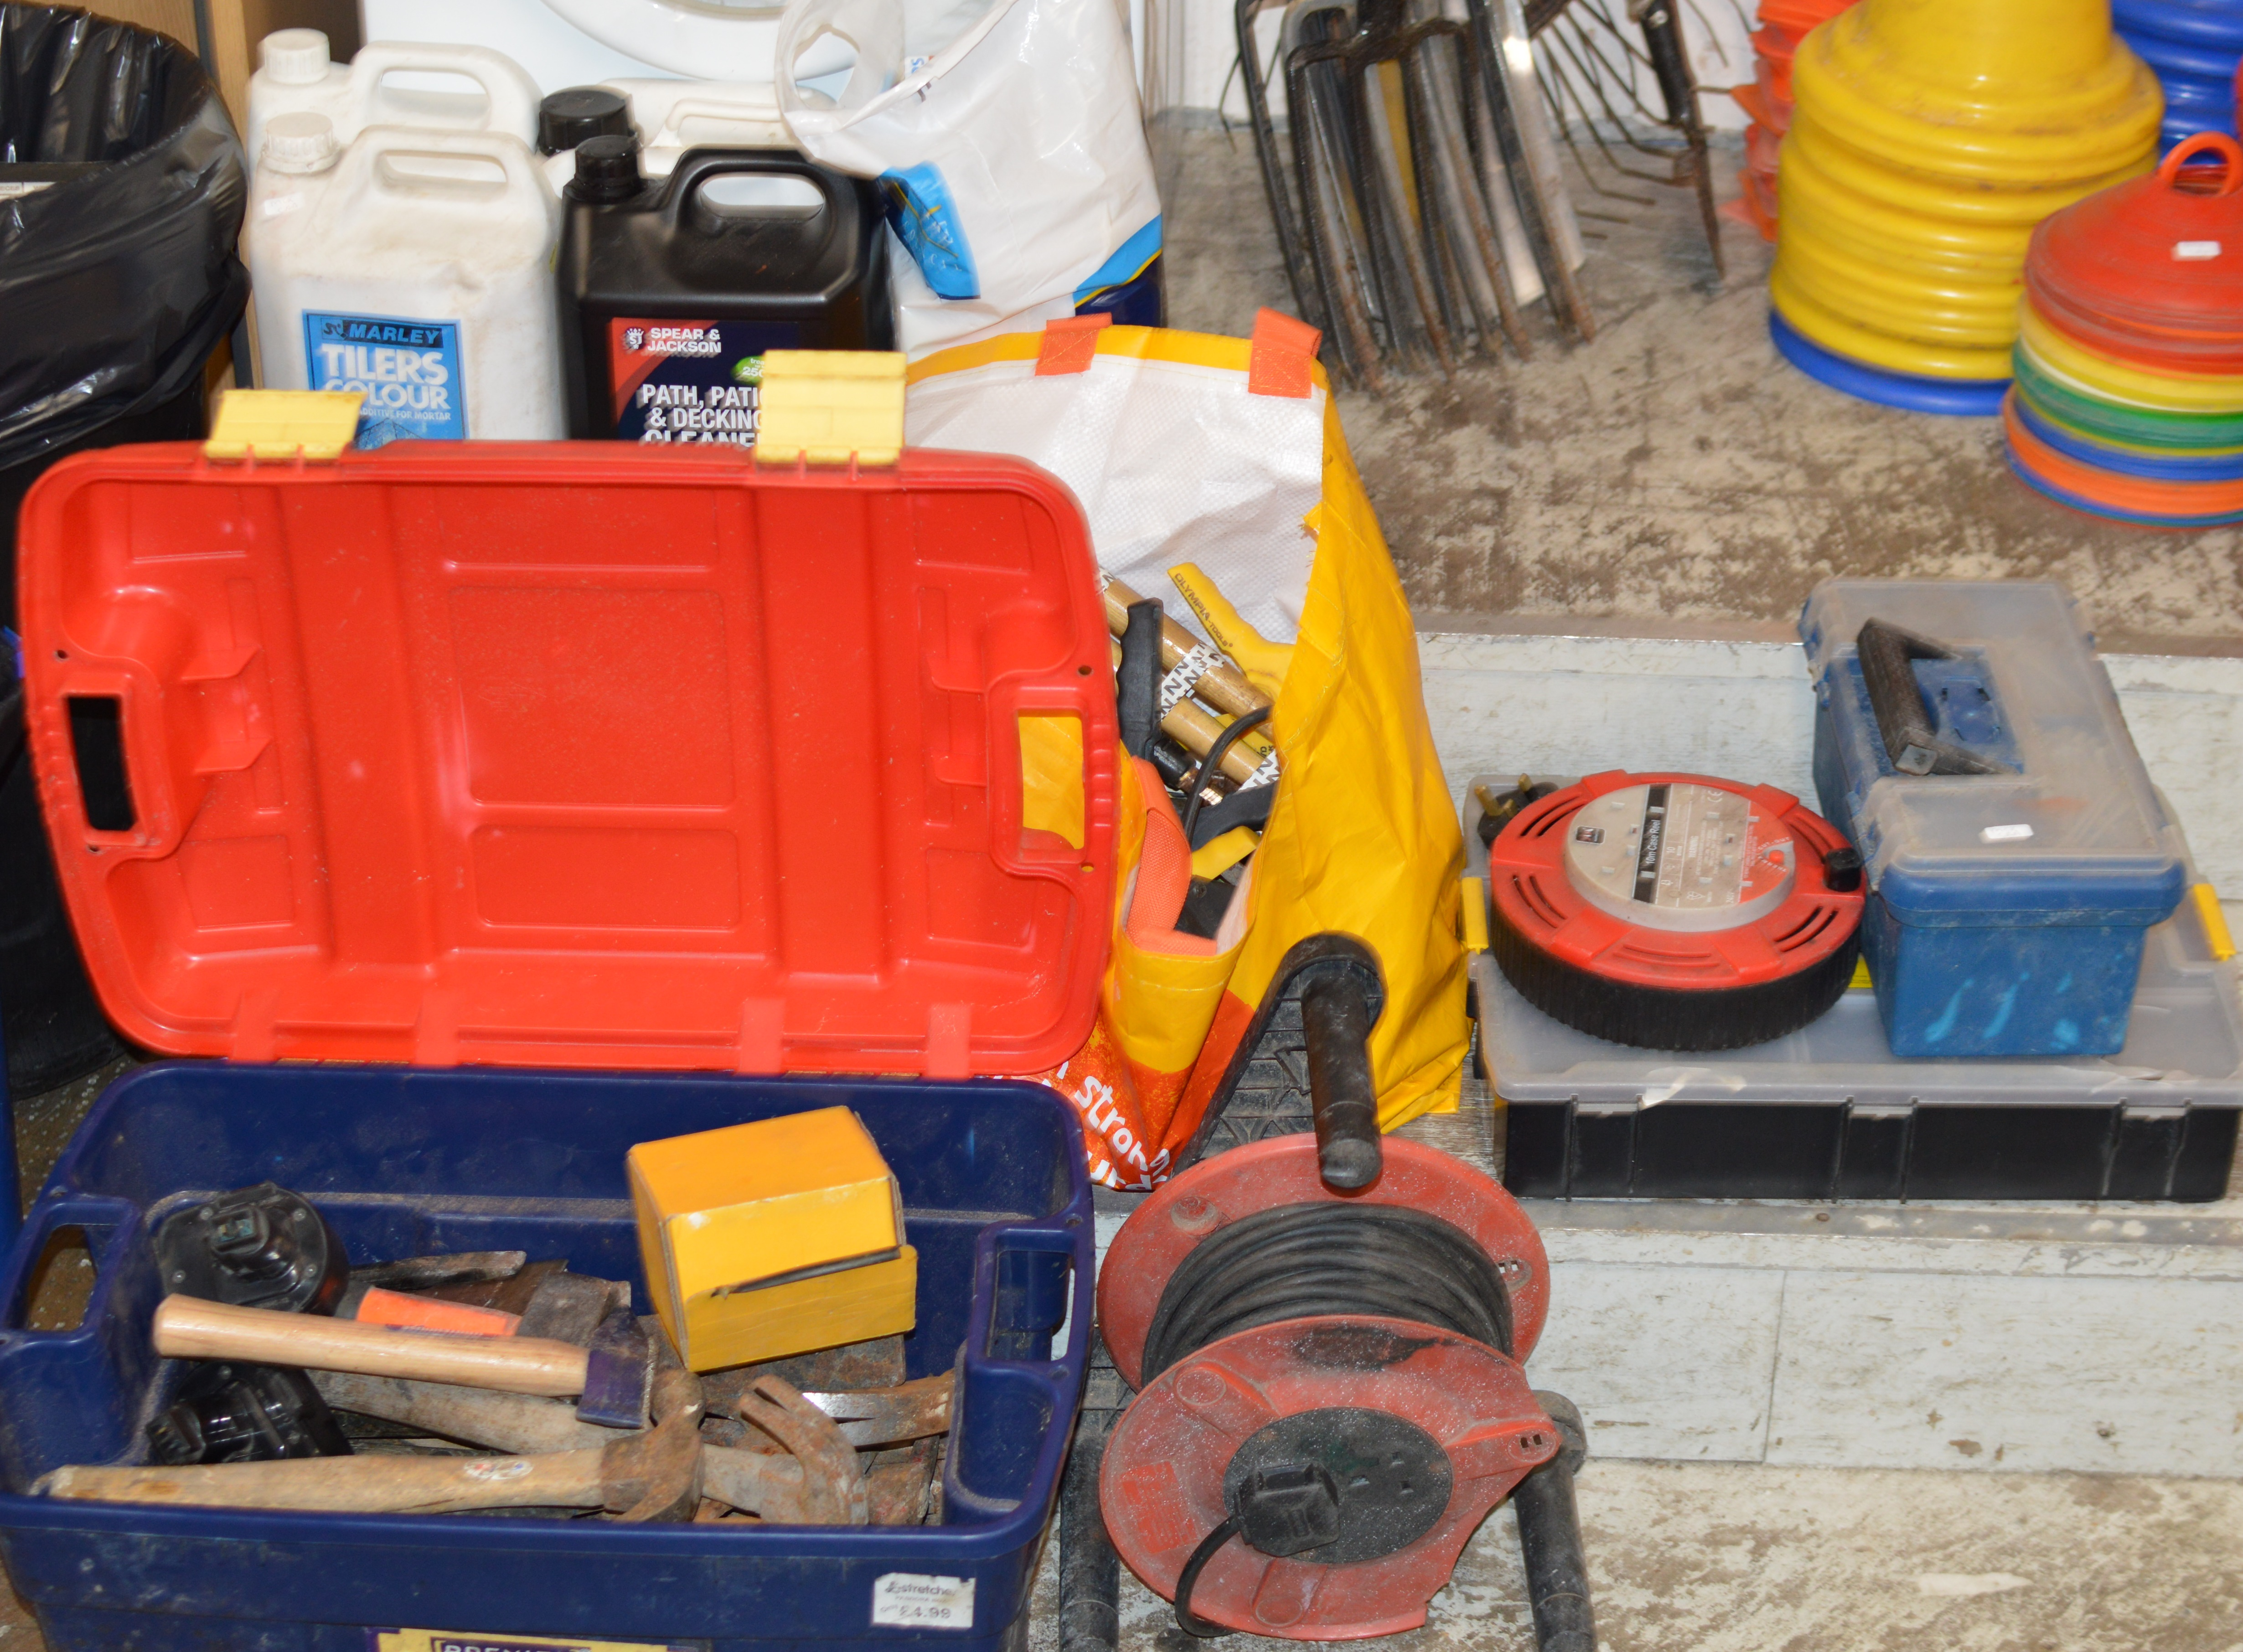 Lot 420 - LARGE QUANTITY VARIOUS TOOLS, HAND TOOLS, NAILS, FITTINGS, DECKING CLEANER, WEED KILLER, LIGHT